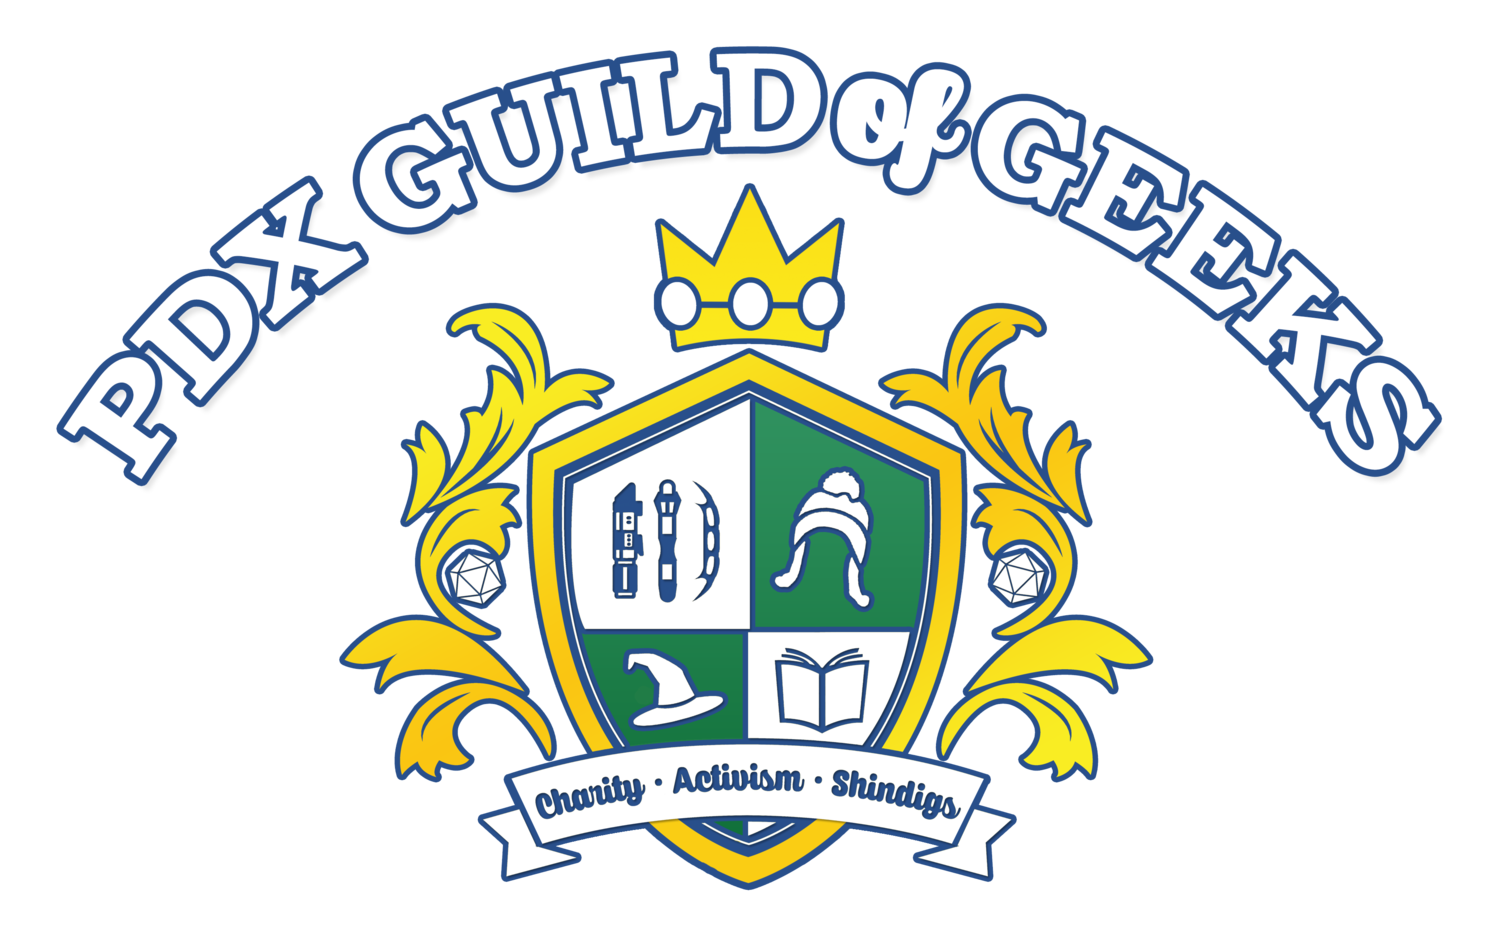 PDX Guild of Geeks